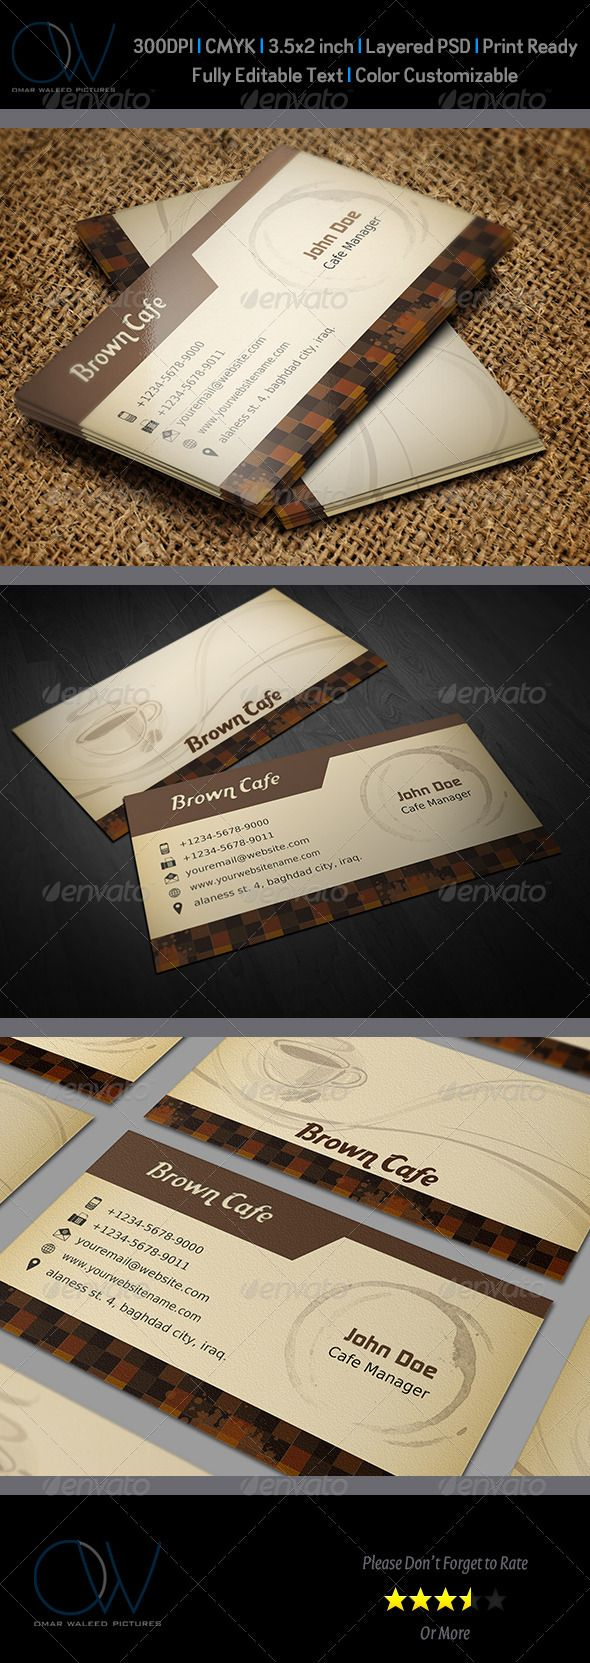 coffee shop business card template | fonts, restaurant and beans